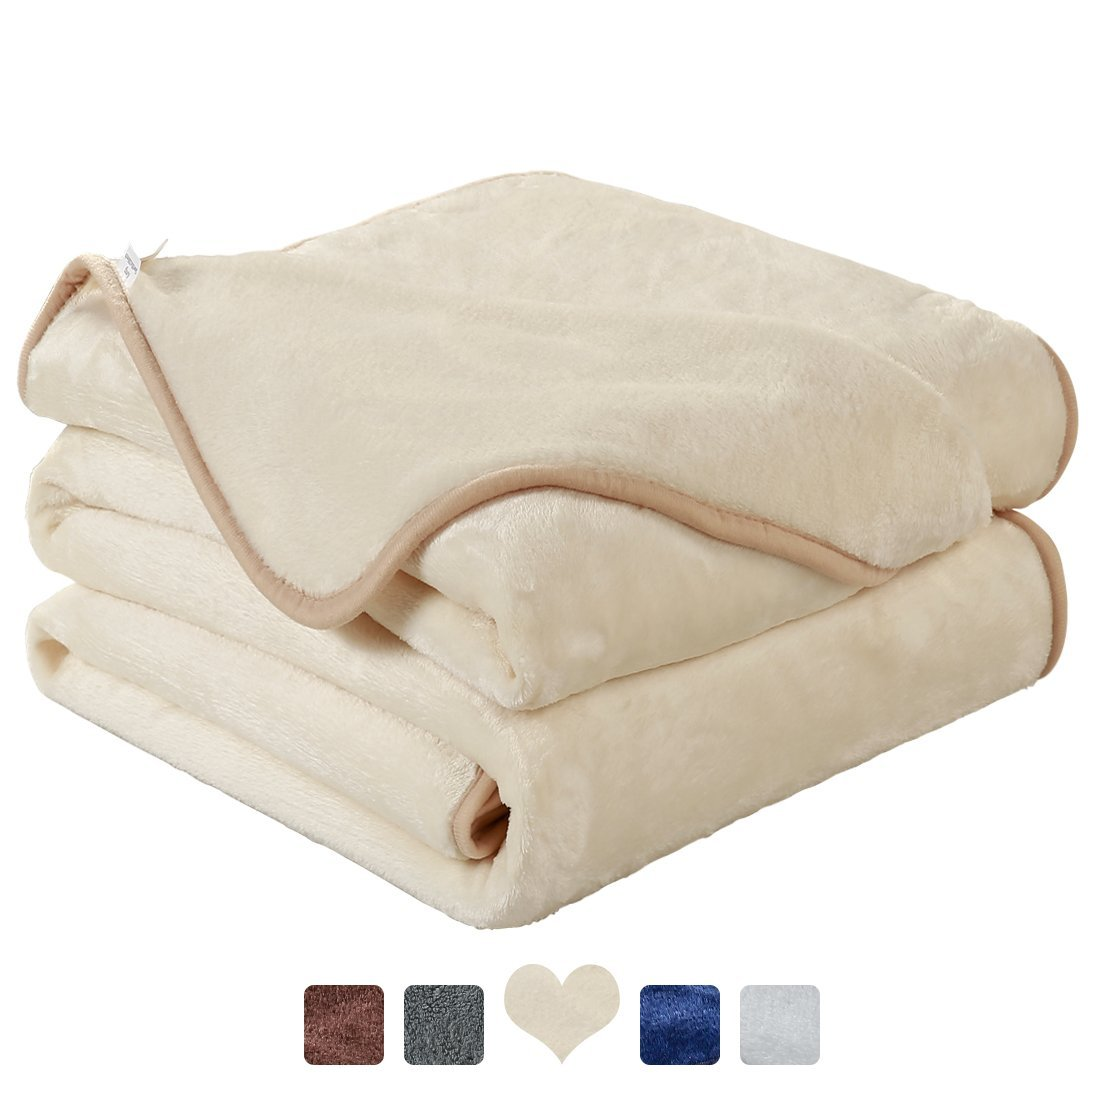 MAEVIS Fleece Luxury Blanket Super Soft Cozy Lightweight Plush Fur Warm All Season Throw for Bed and Couch (Queen, Ivory)